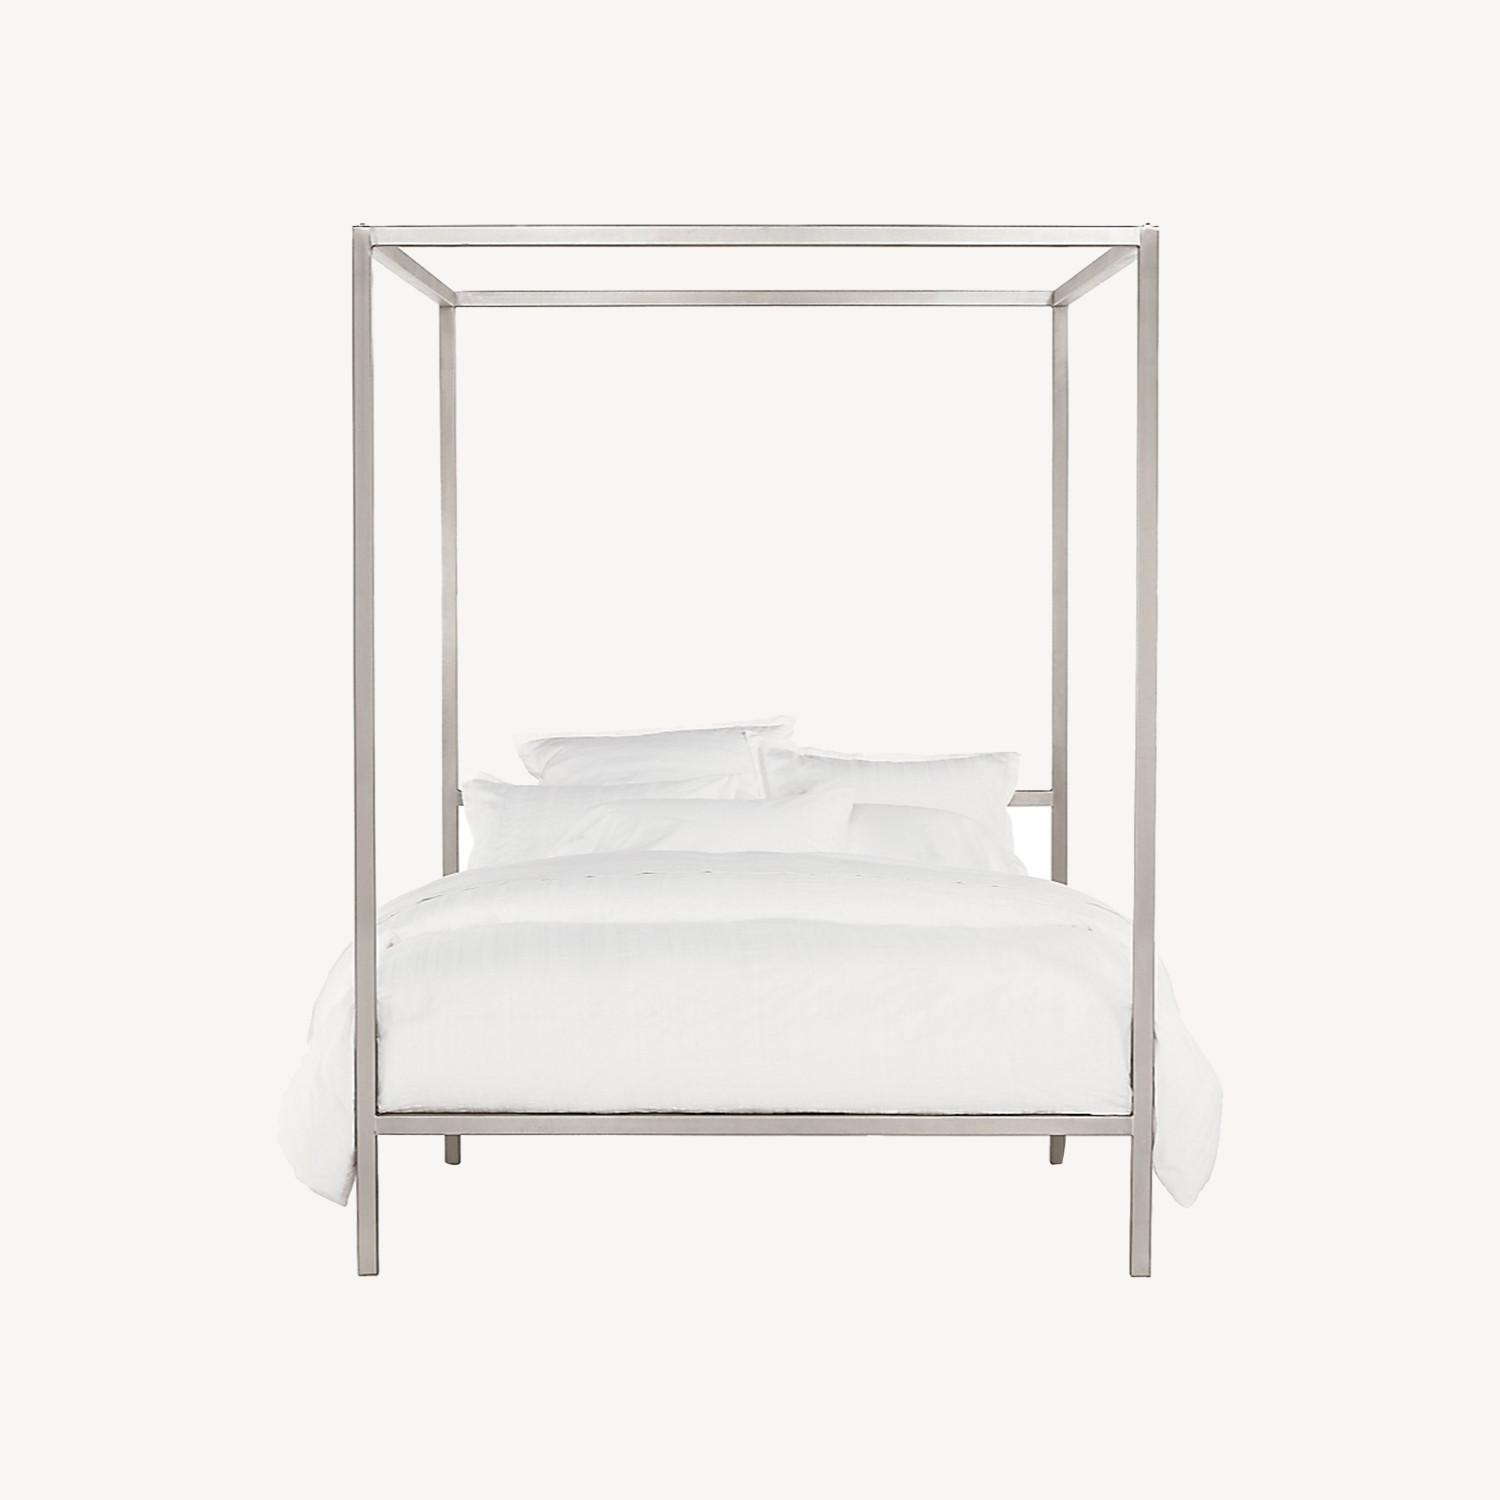 Room & Board Portica Queen Size Canopy Bed - image-0